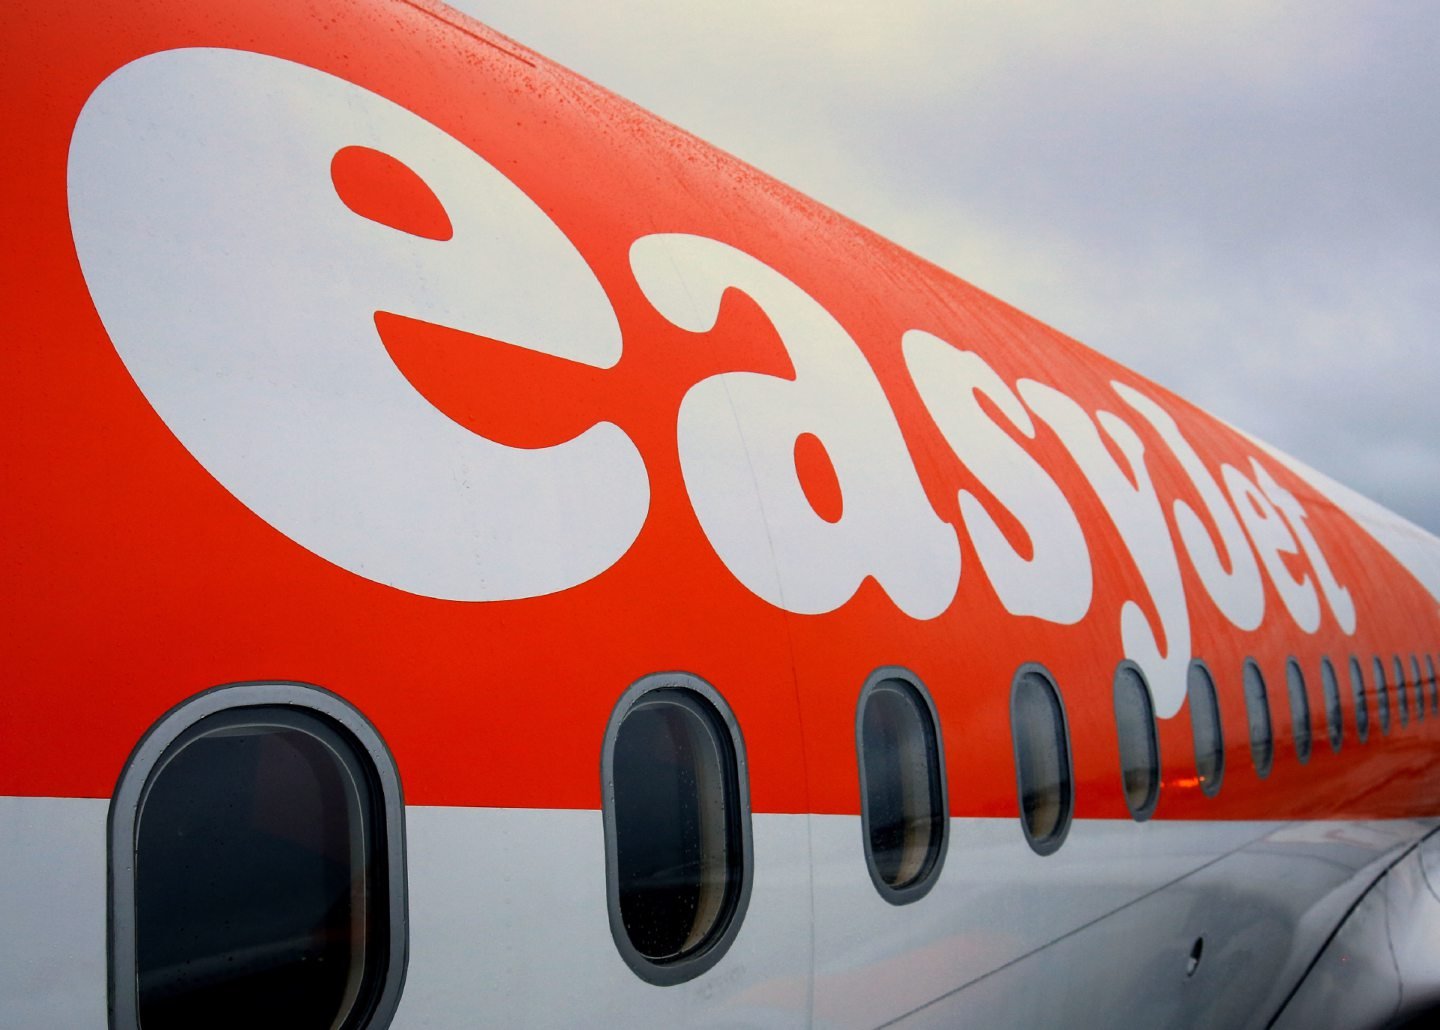 EasyJet will operate flights from Aberdeen to Gatwick once again.